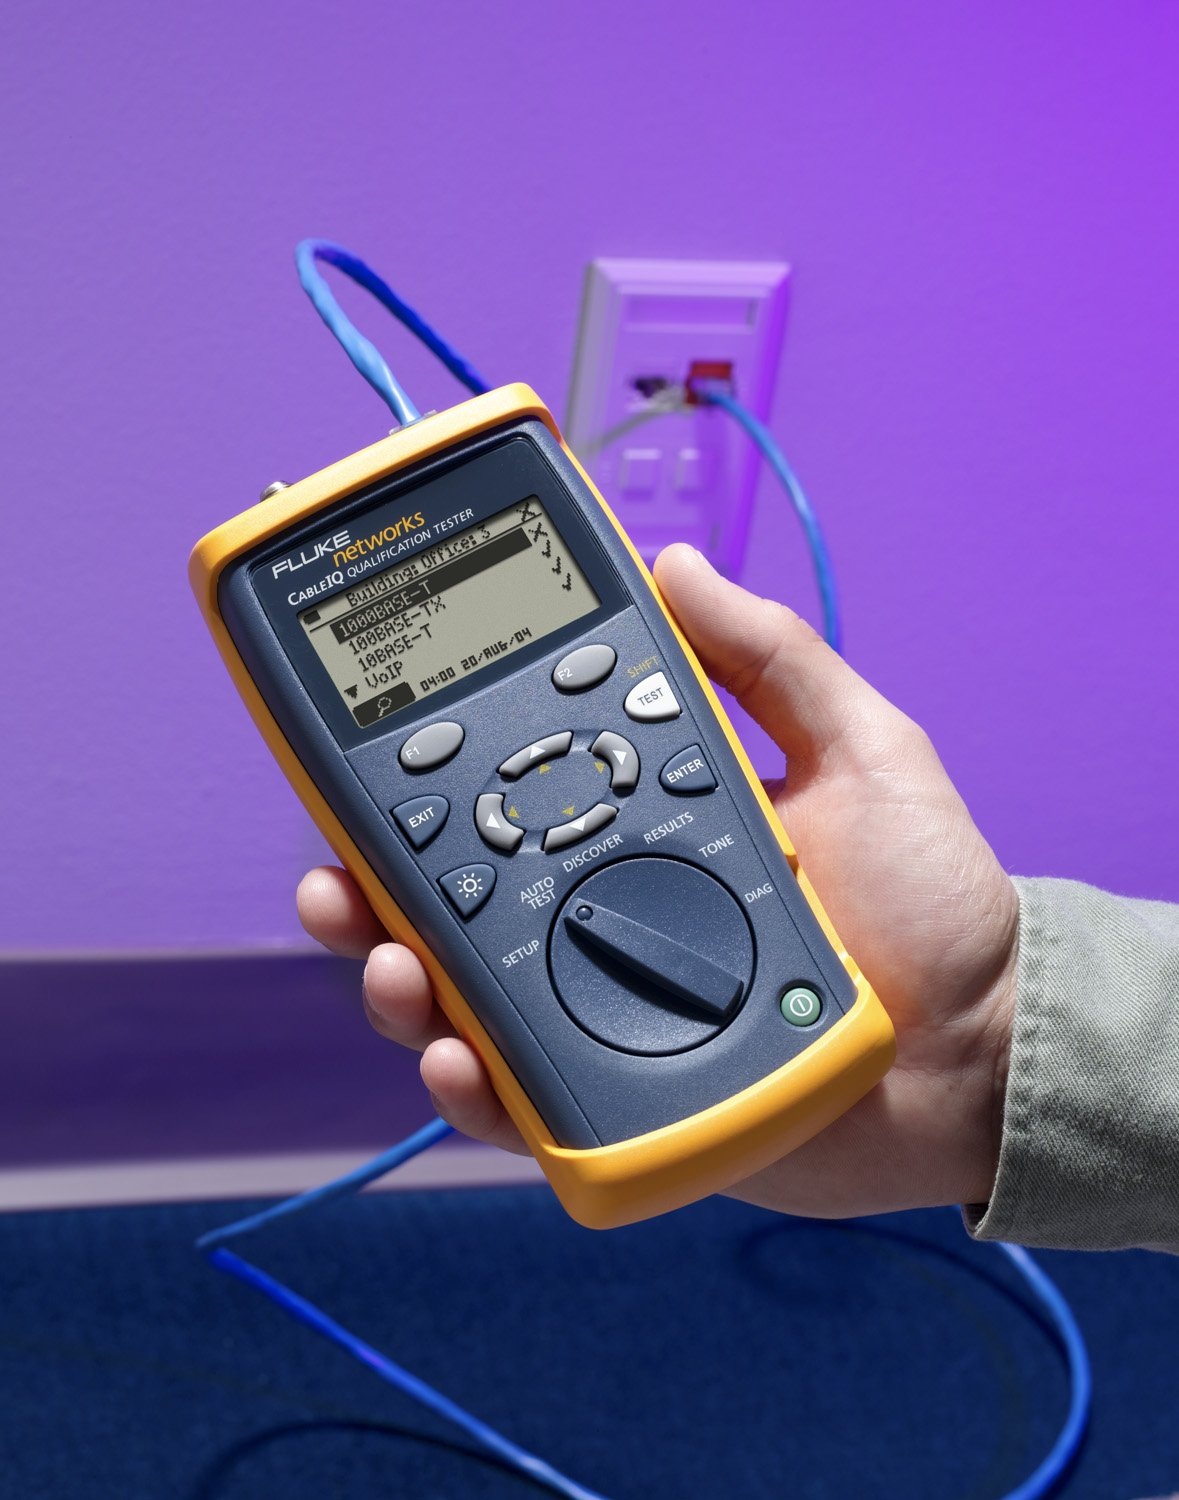 Fluke Networks Ciq 100 Cable Tester Circuit Testers Network Wiring Commercial Design Industrial Scientific